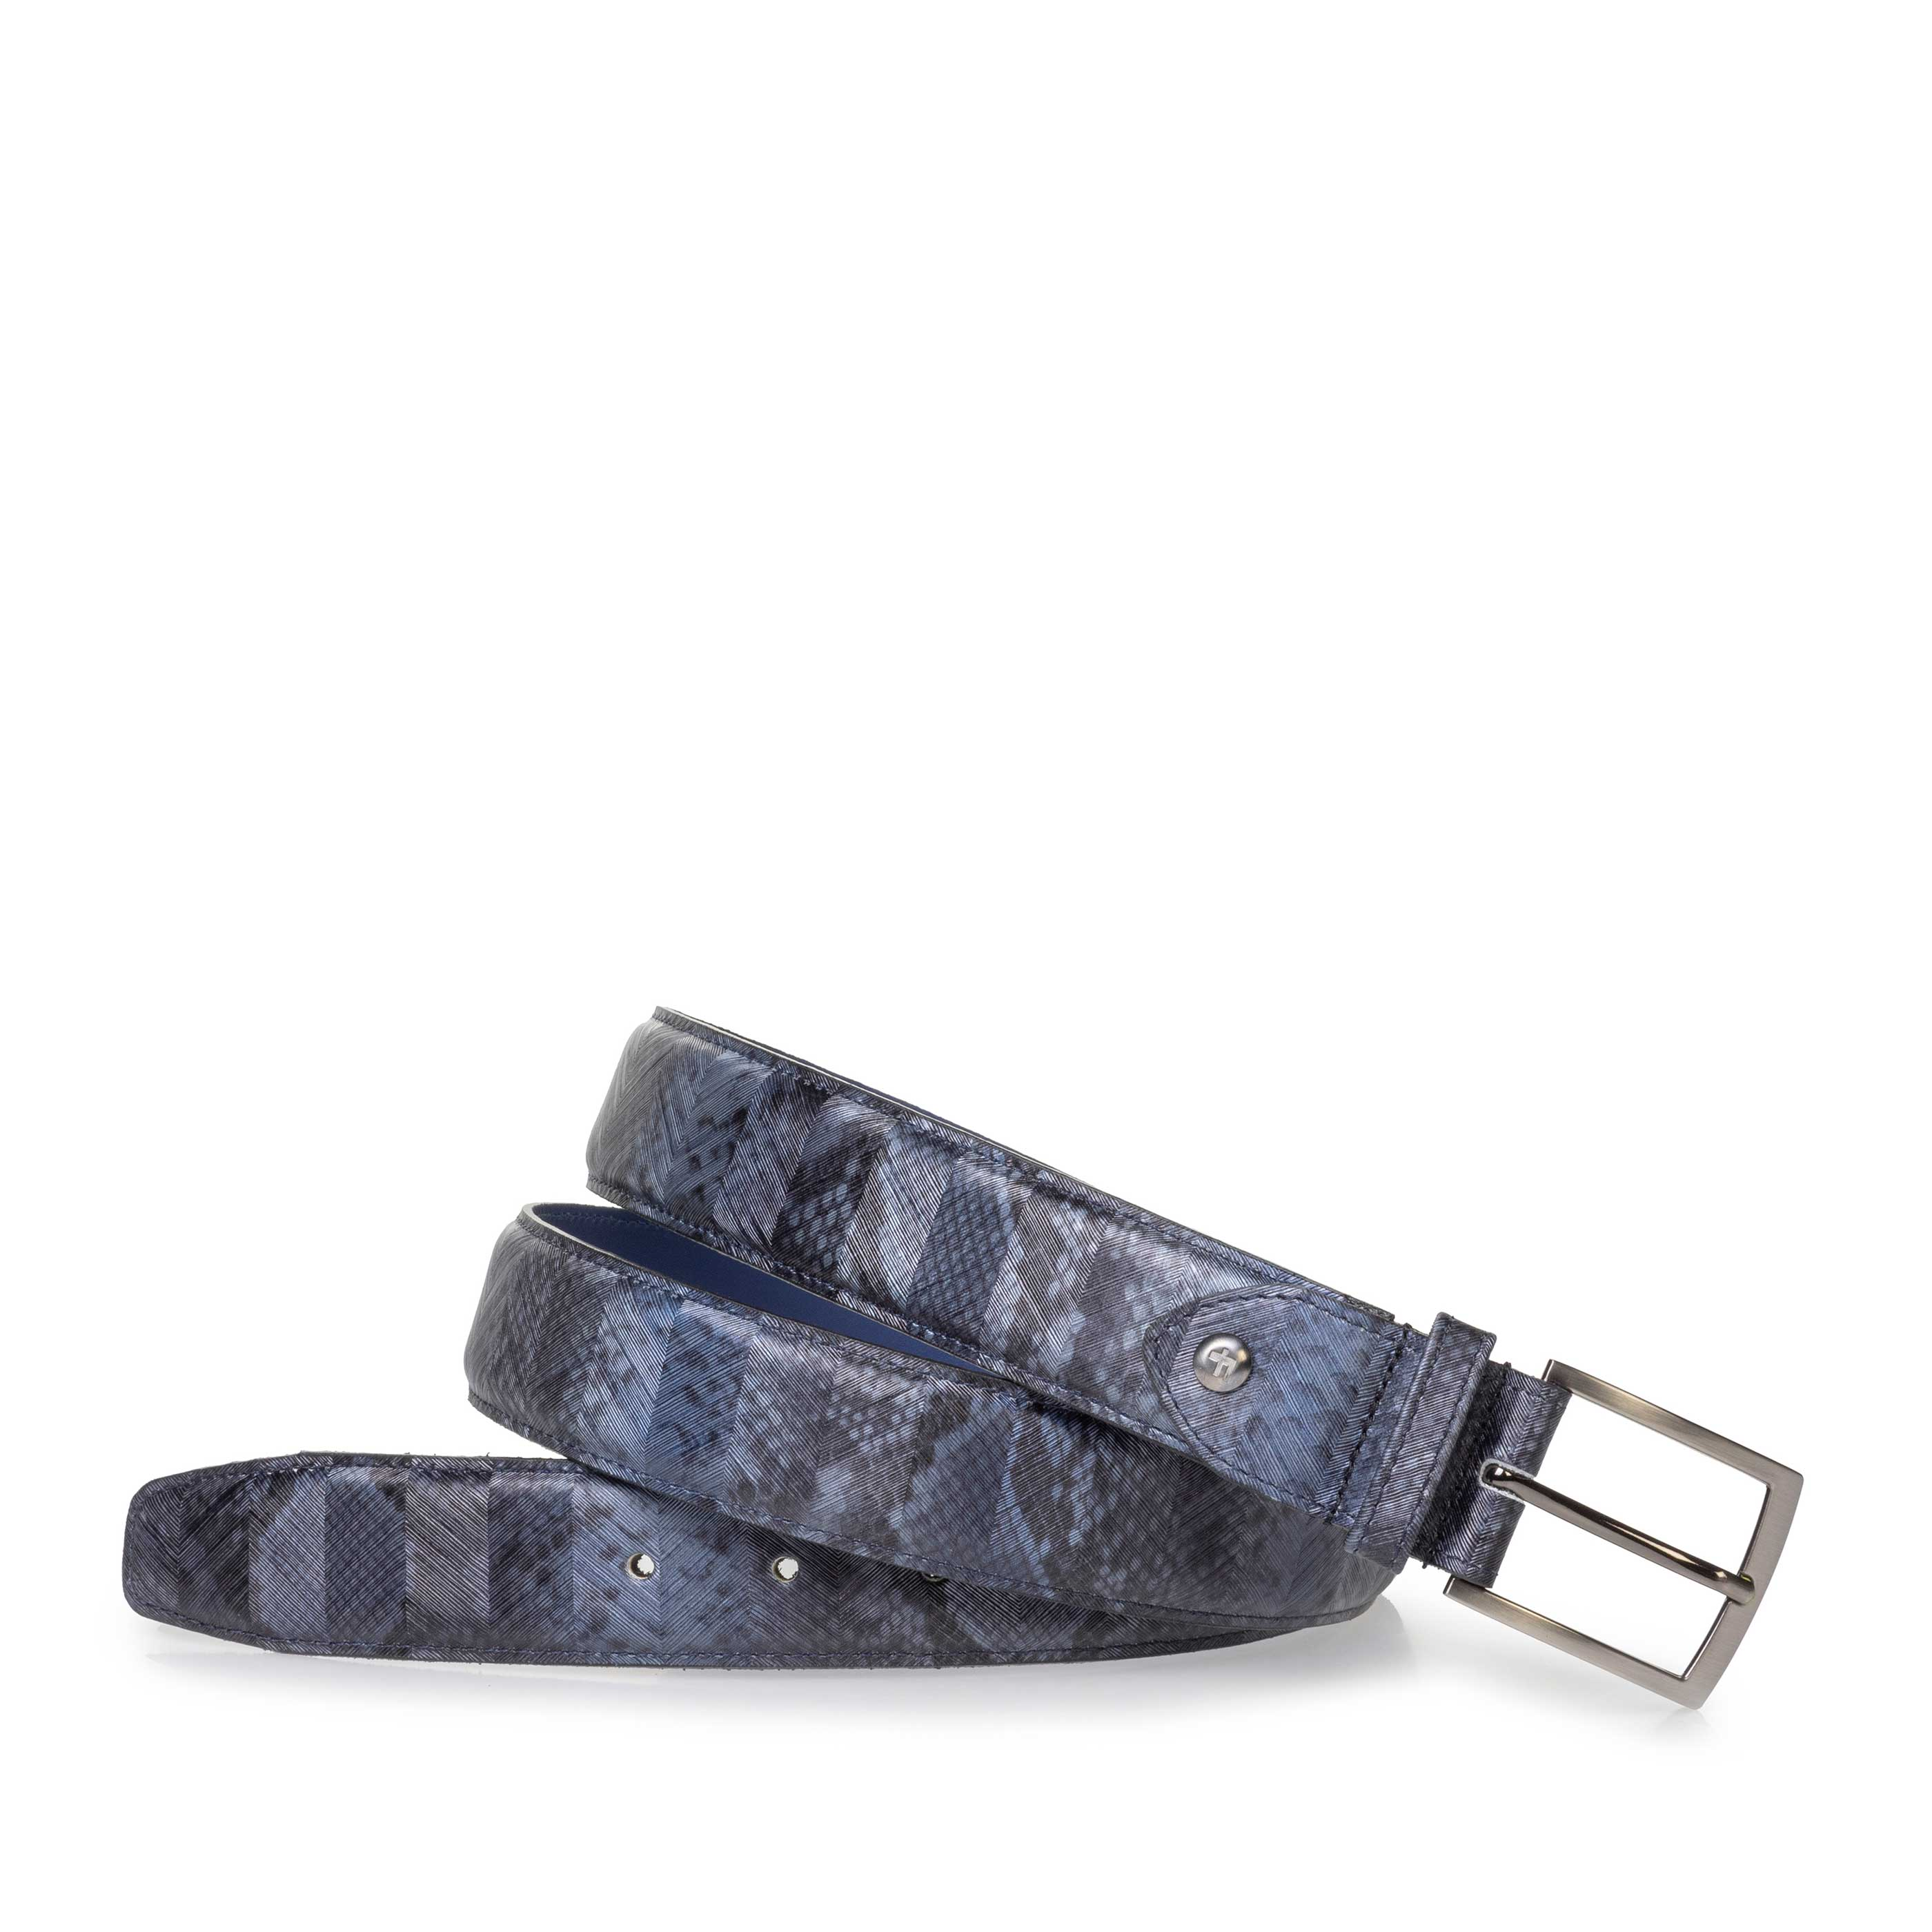 75201/89 - Grey patent leather belt with snake print